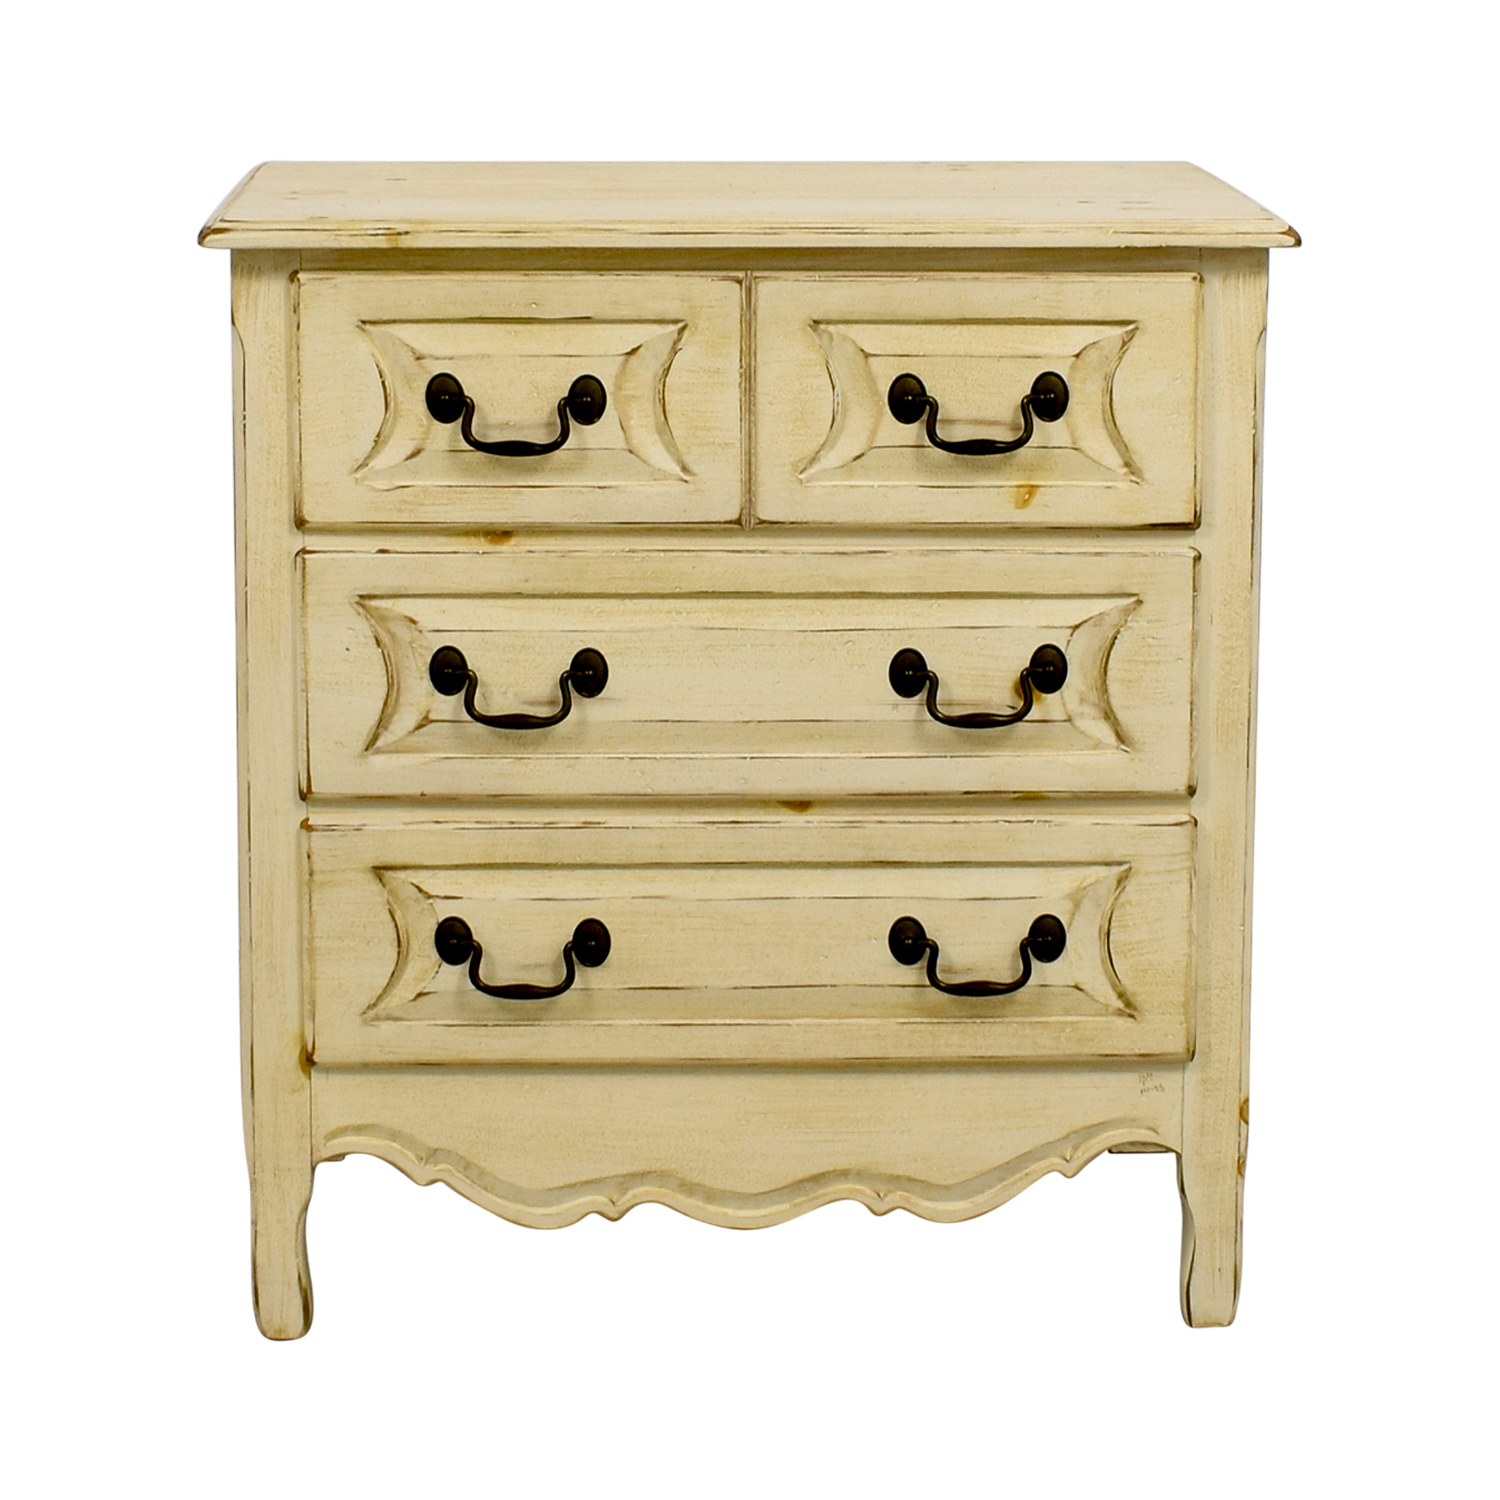 Habersham Plantation Habersham Plantation Rustic Three-Drawer Dresser discount